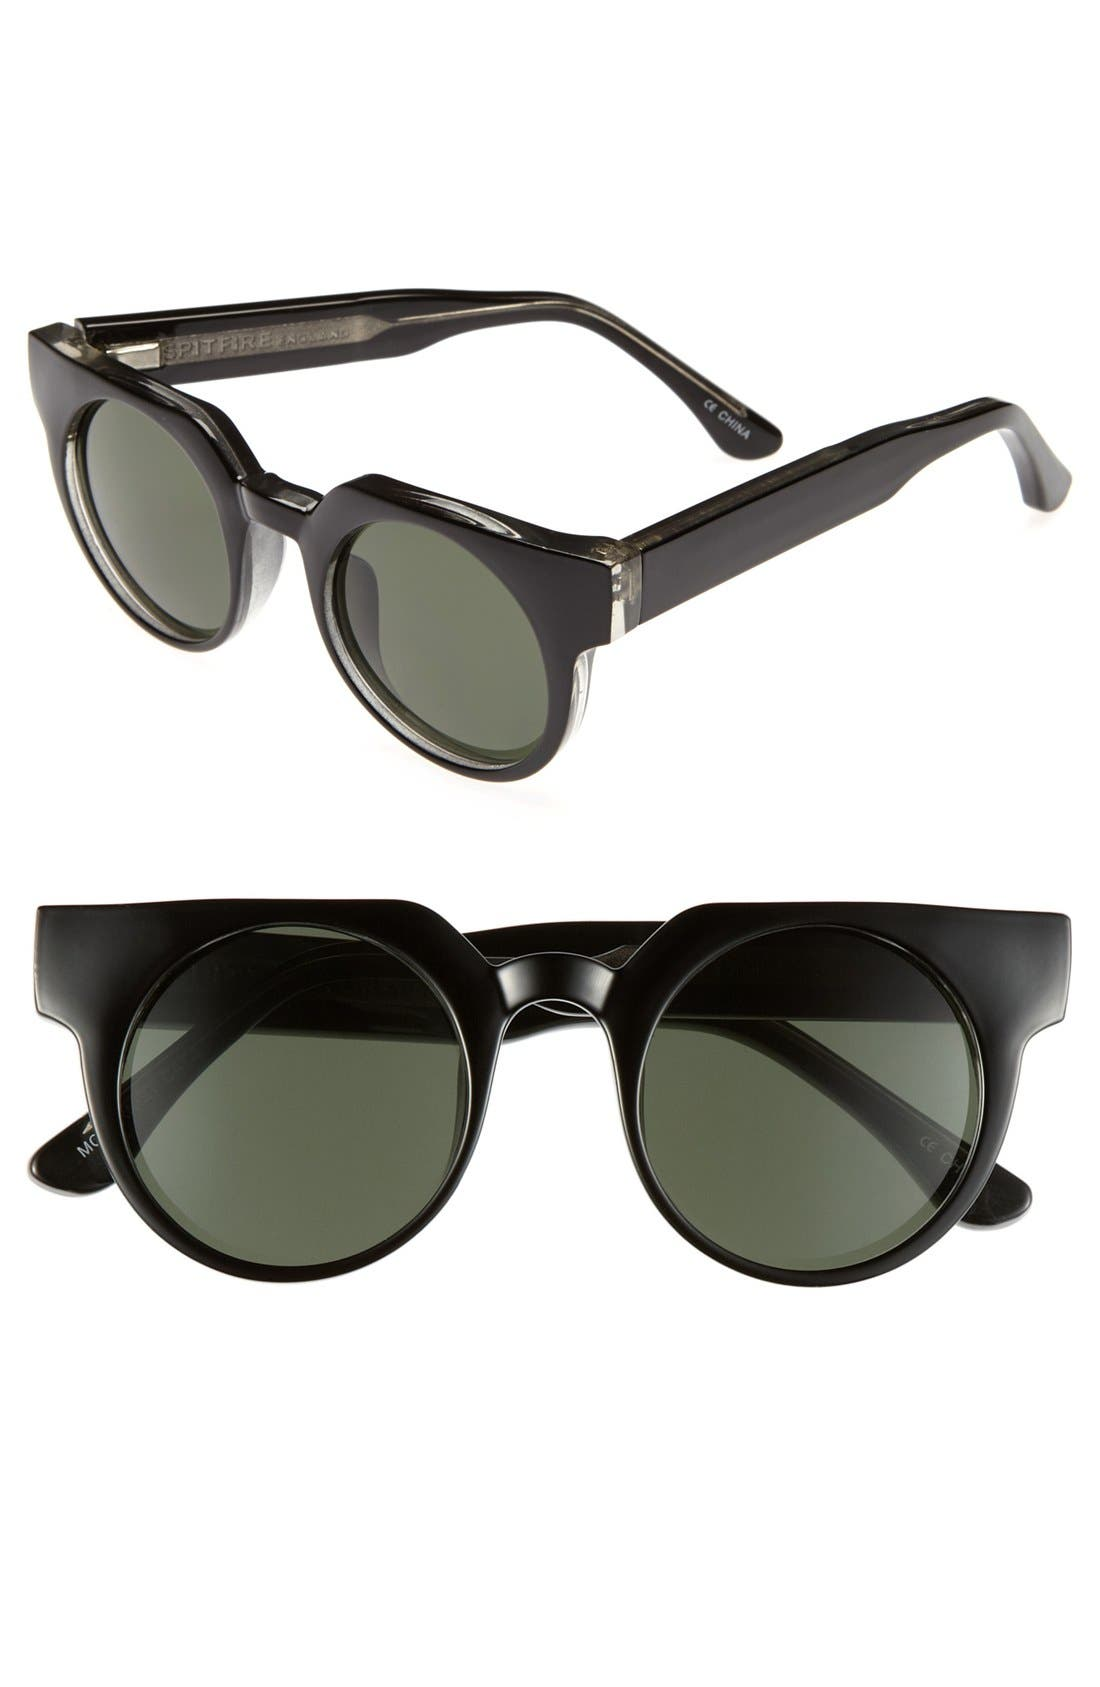 Main Image - Spitfire Sunglasses